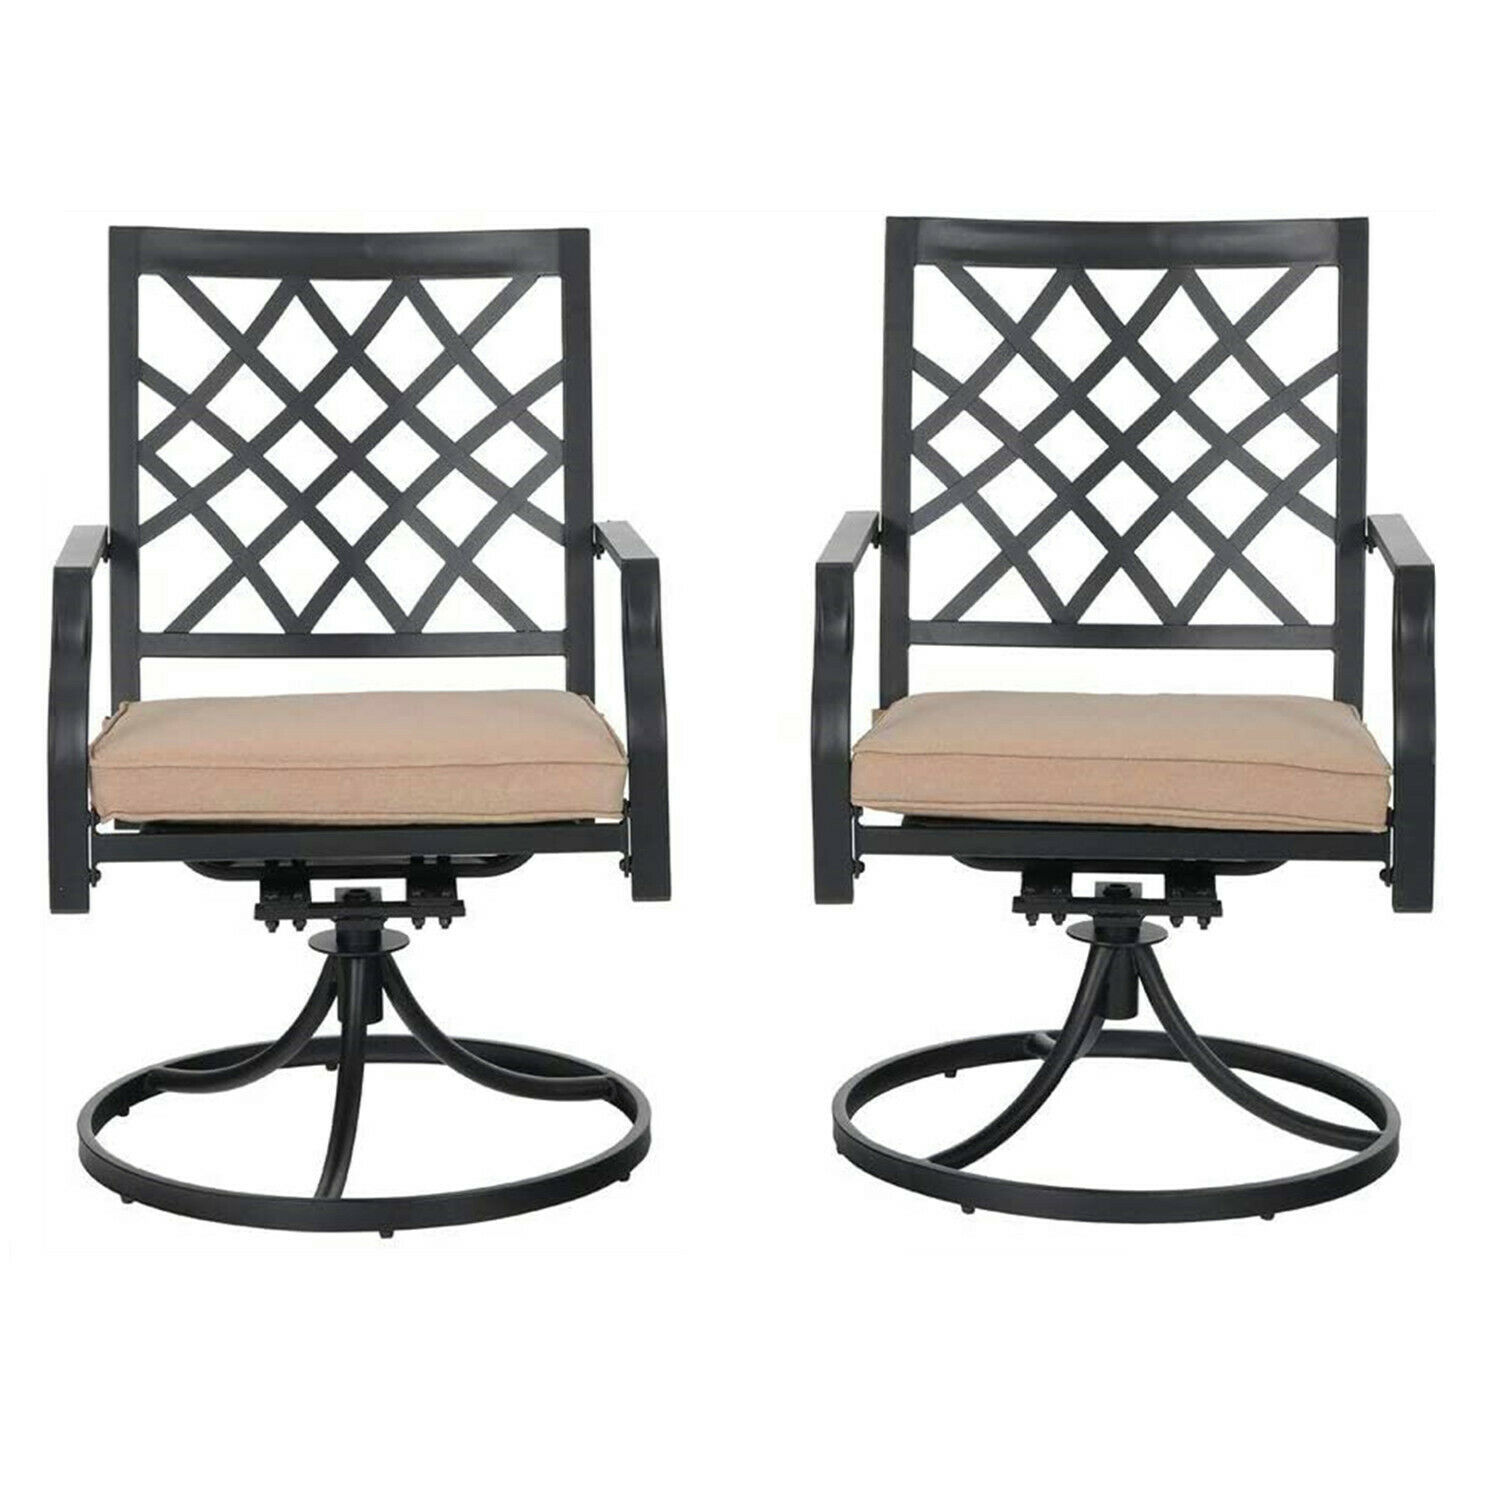 Garden Furniture - Swivel Patio Chair Set of 2 Metal Outdoor Chairs With Cushion Garden Furniture